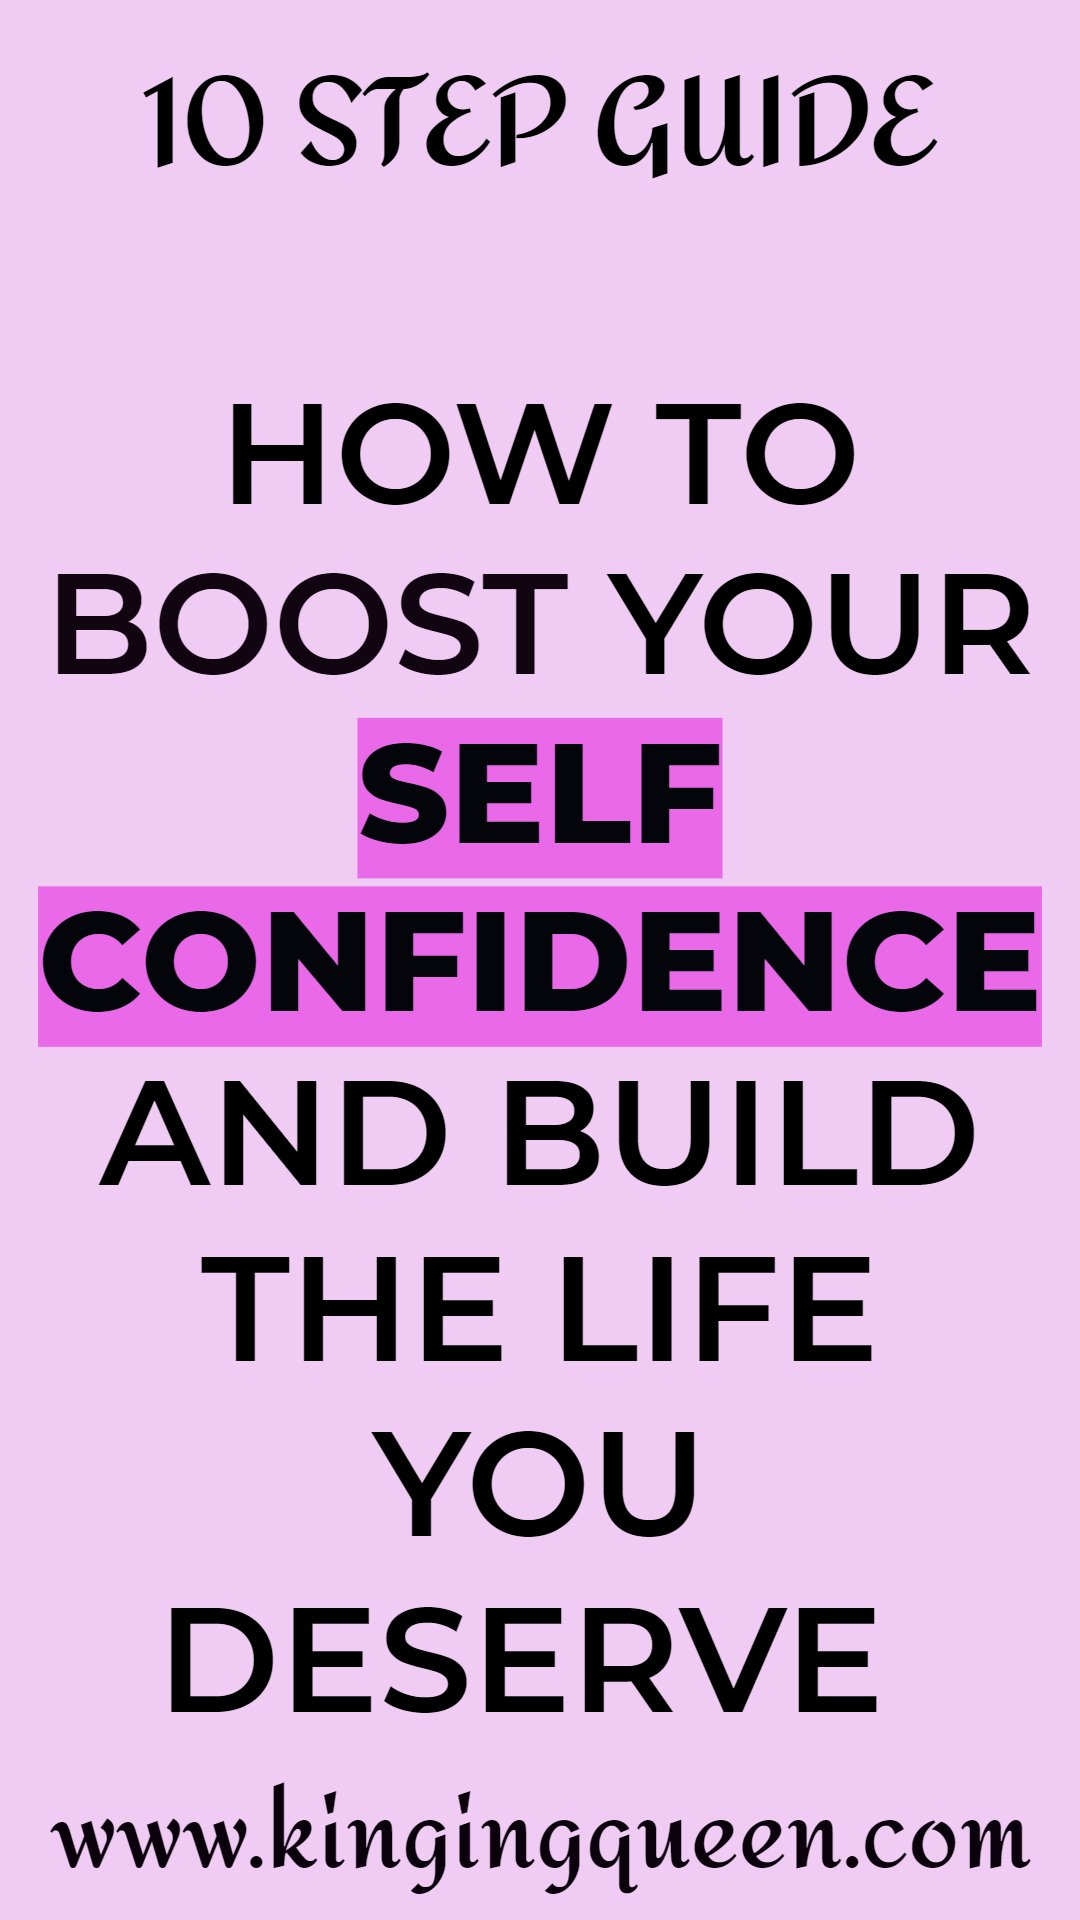 Graphic showing 10 Step Guide on How To Boost Self Confidence.